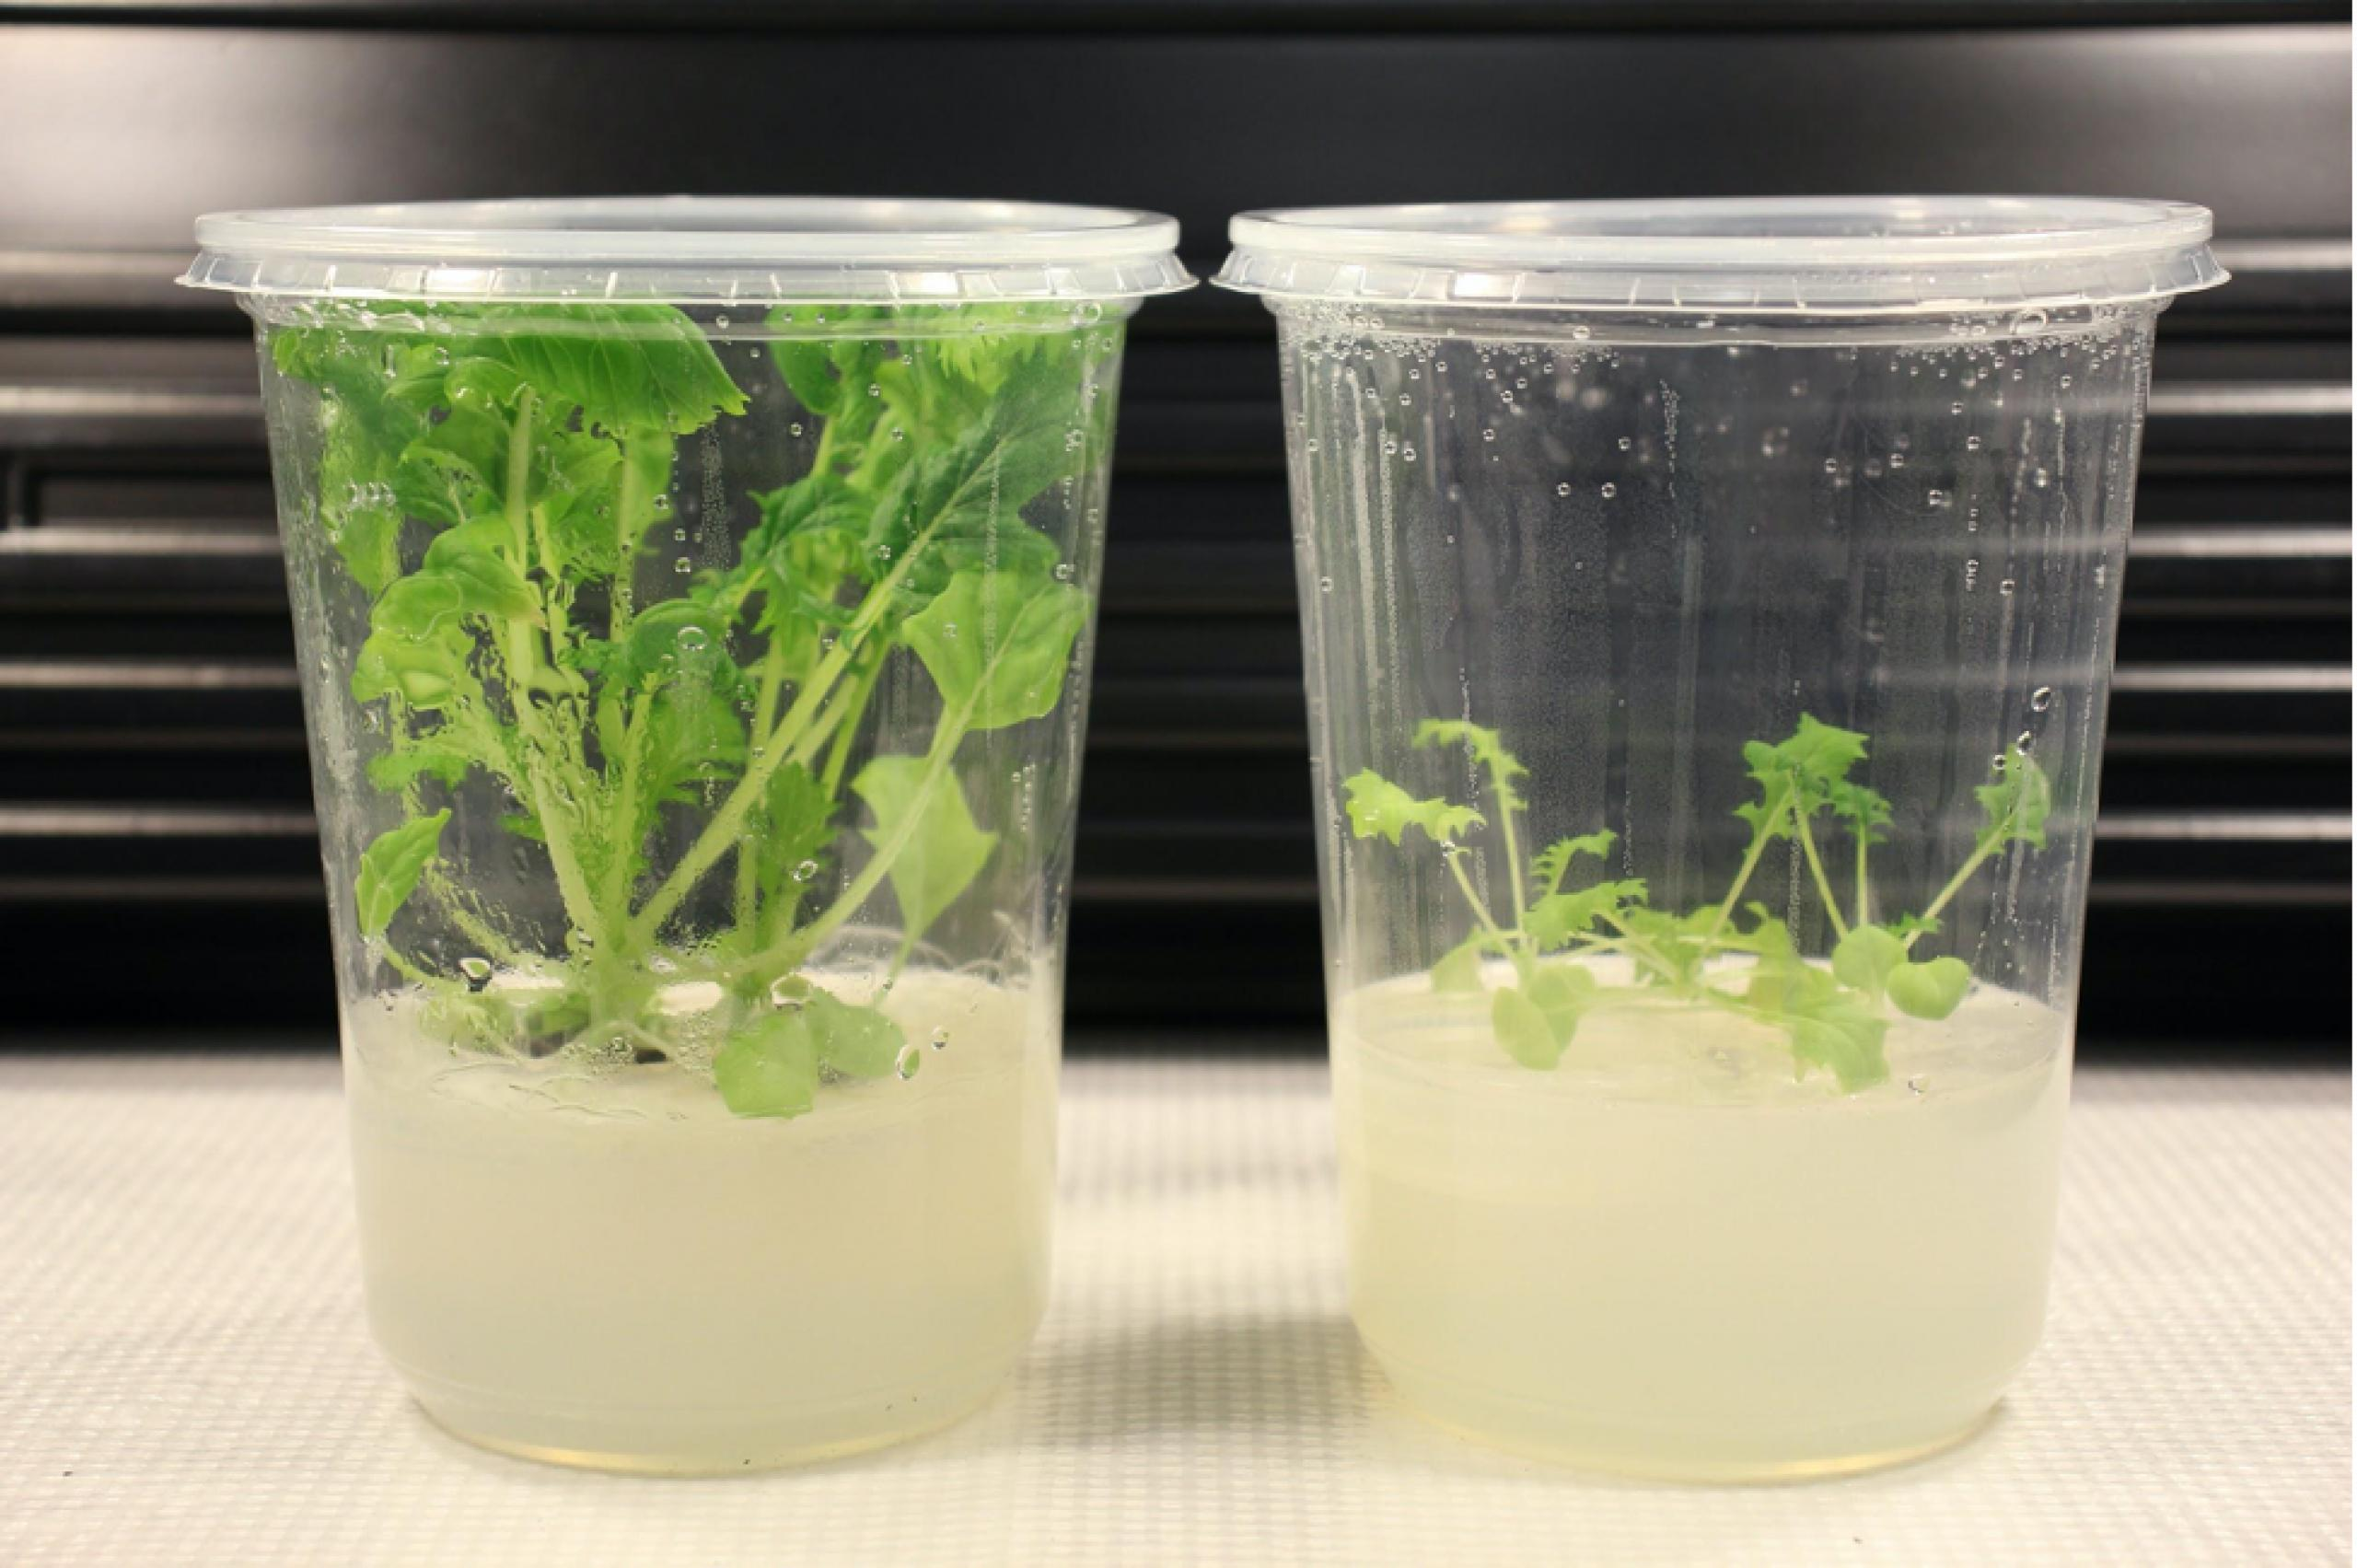 Two clear plastic cups. The left cup shows a thriving, bright green Mizuna seedling in a pale tan growing medium. The right cup shows a much smaller, paler green Mizuna seedling in a pale tan growing medium.